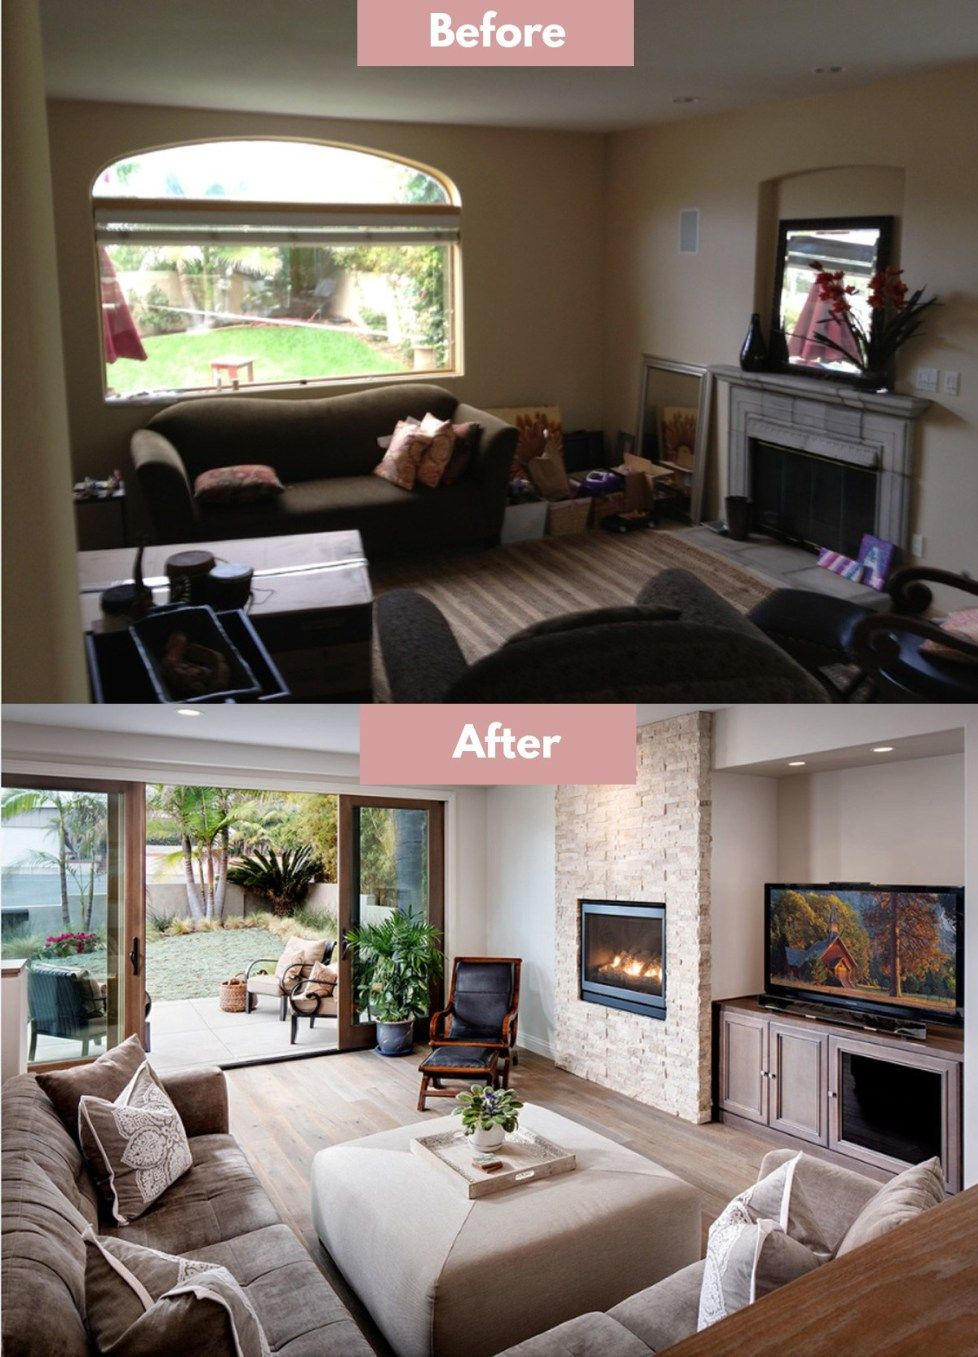 Fireplace Remodel Before And After Fireplace Remodel Living Room Design Small Spaces Living Room Design Layout